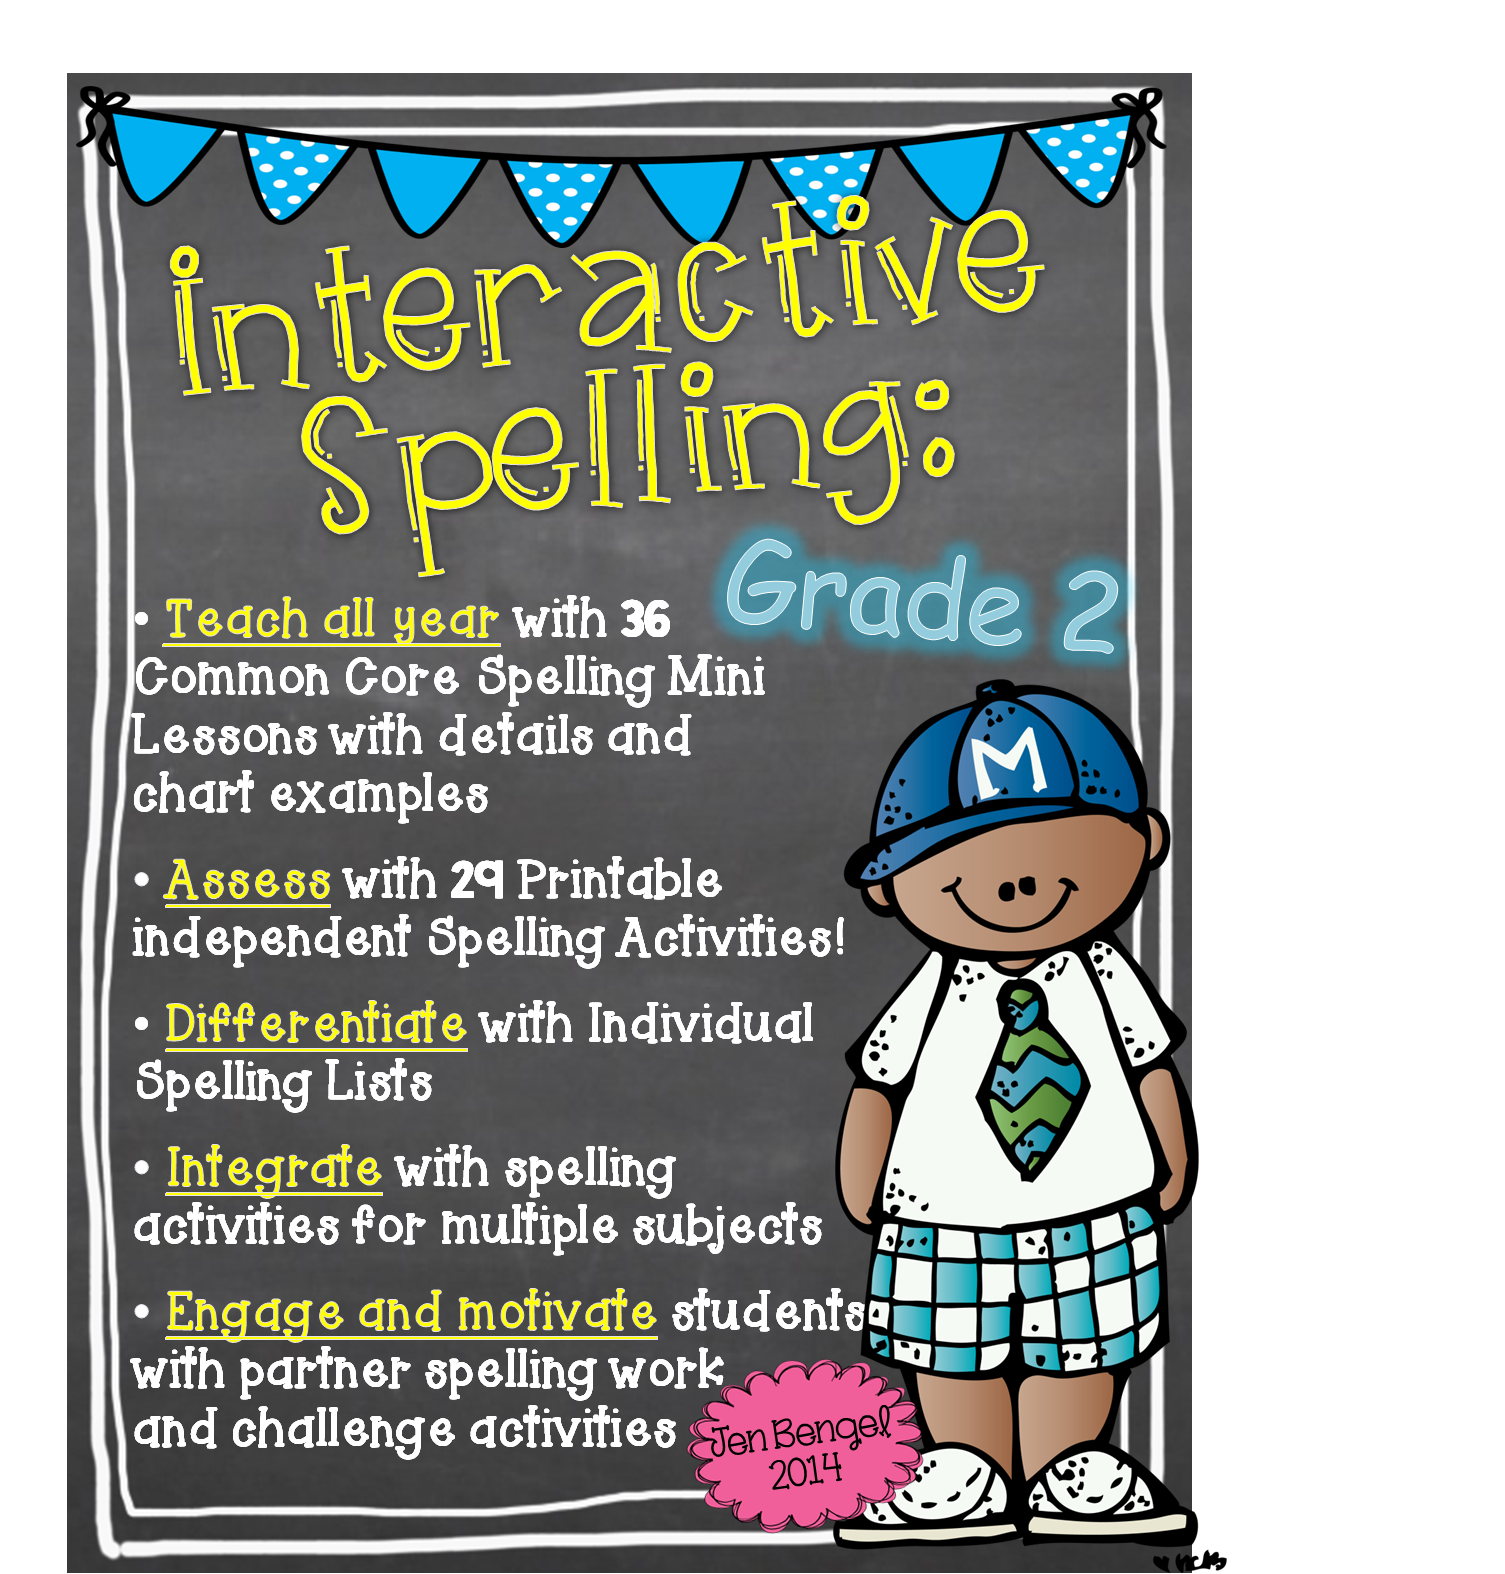 http://www.teacherspayteachers.com/Product/Interactive-Spelling-Grade-2-A-Year-Long-Common-Core-Unit-1164904